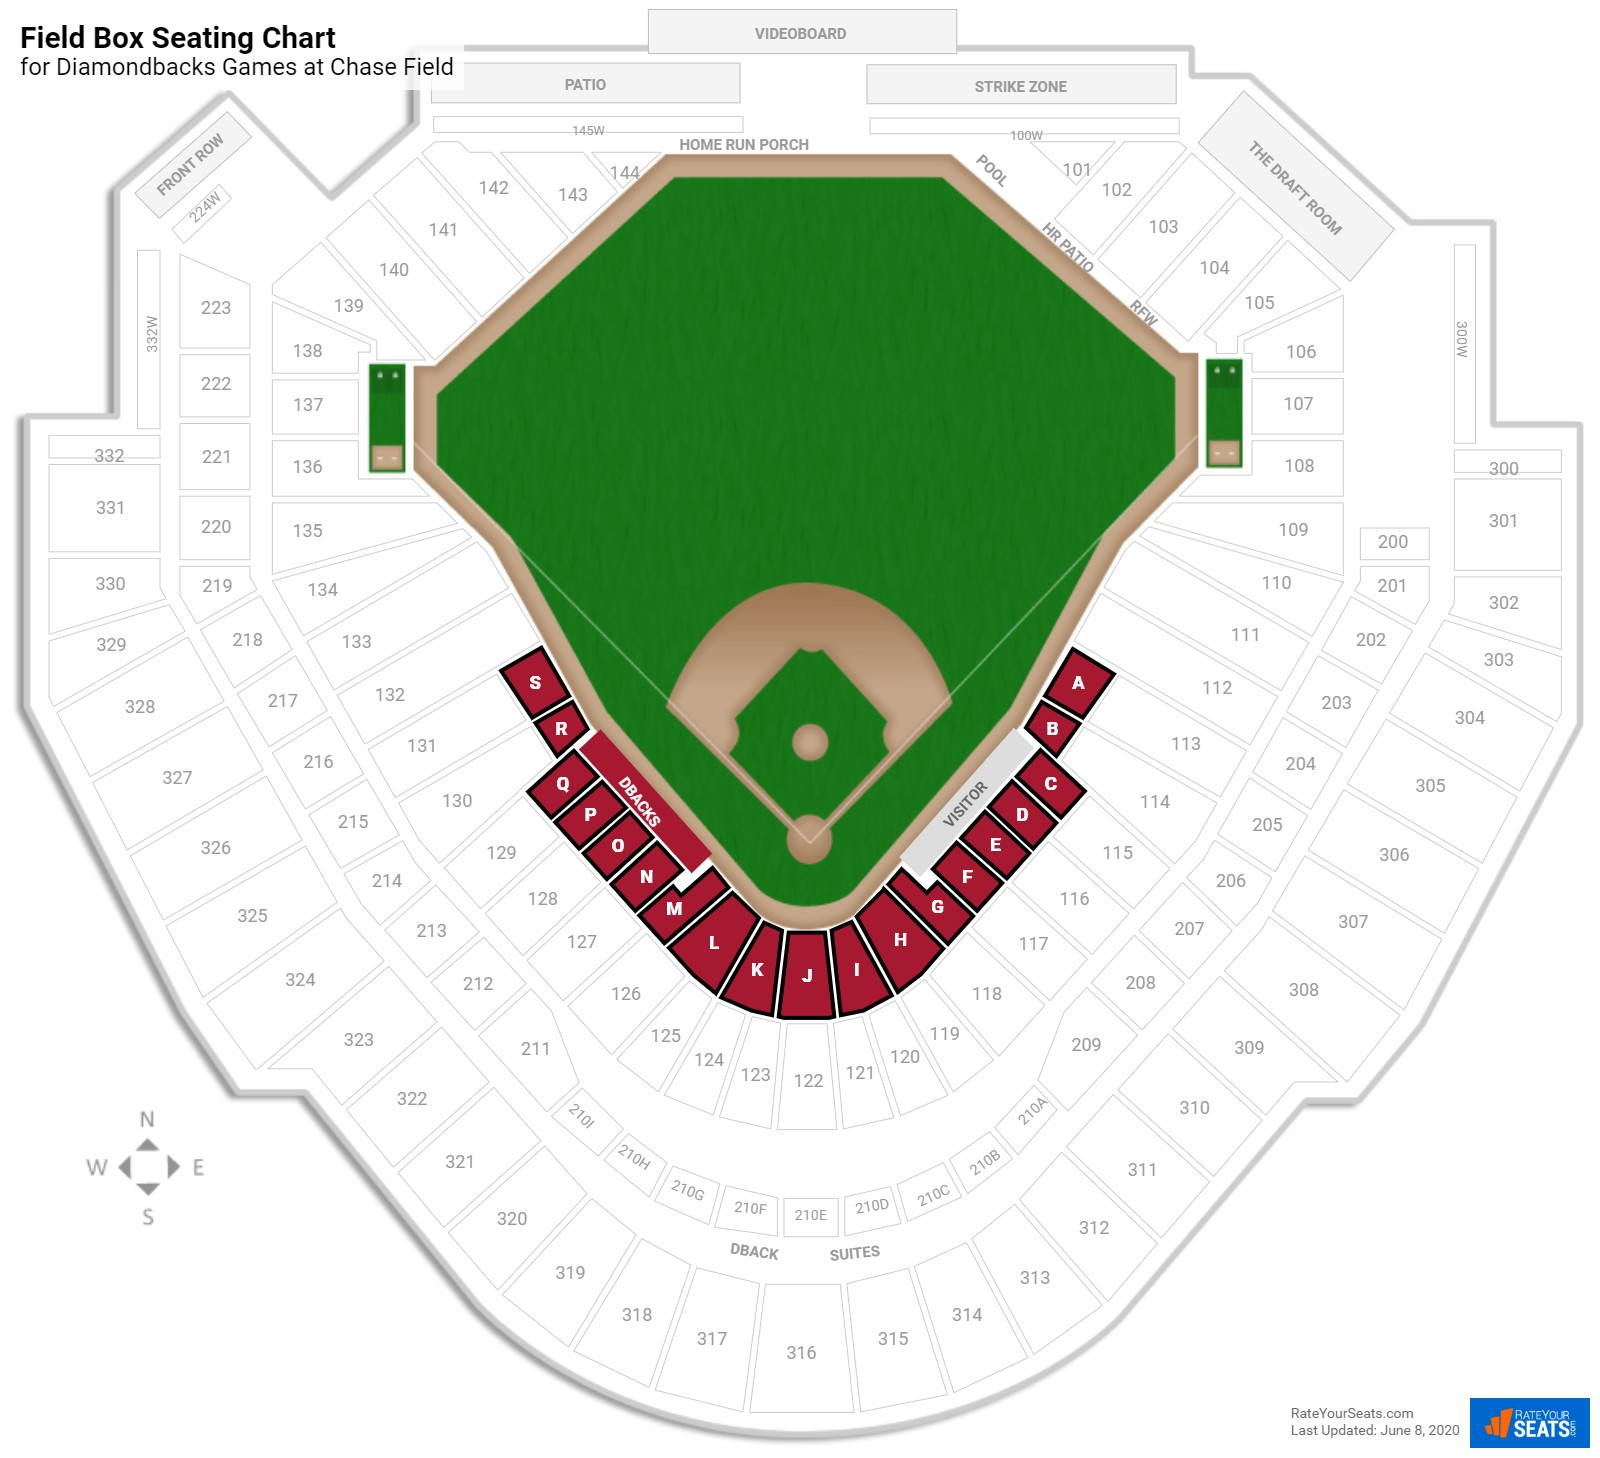 Chase Field Field Level Infield seating chart